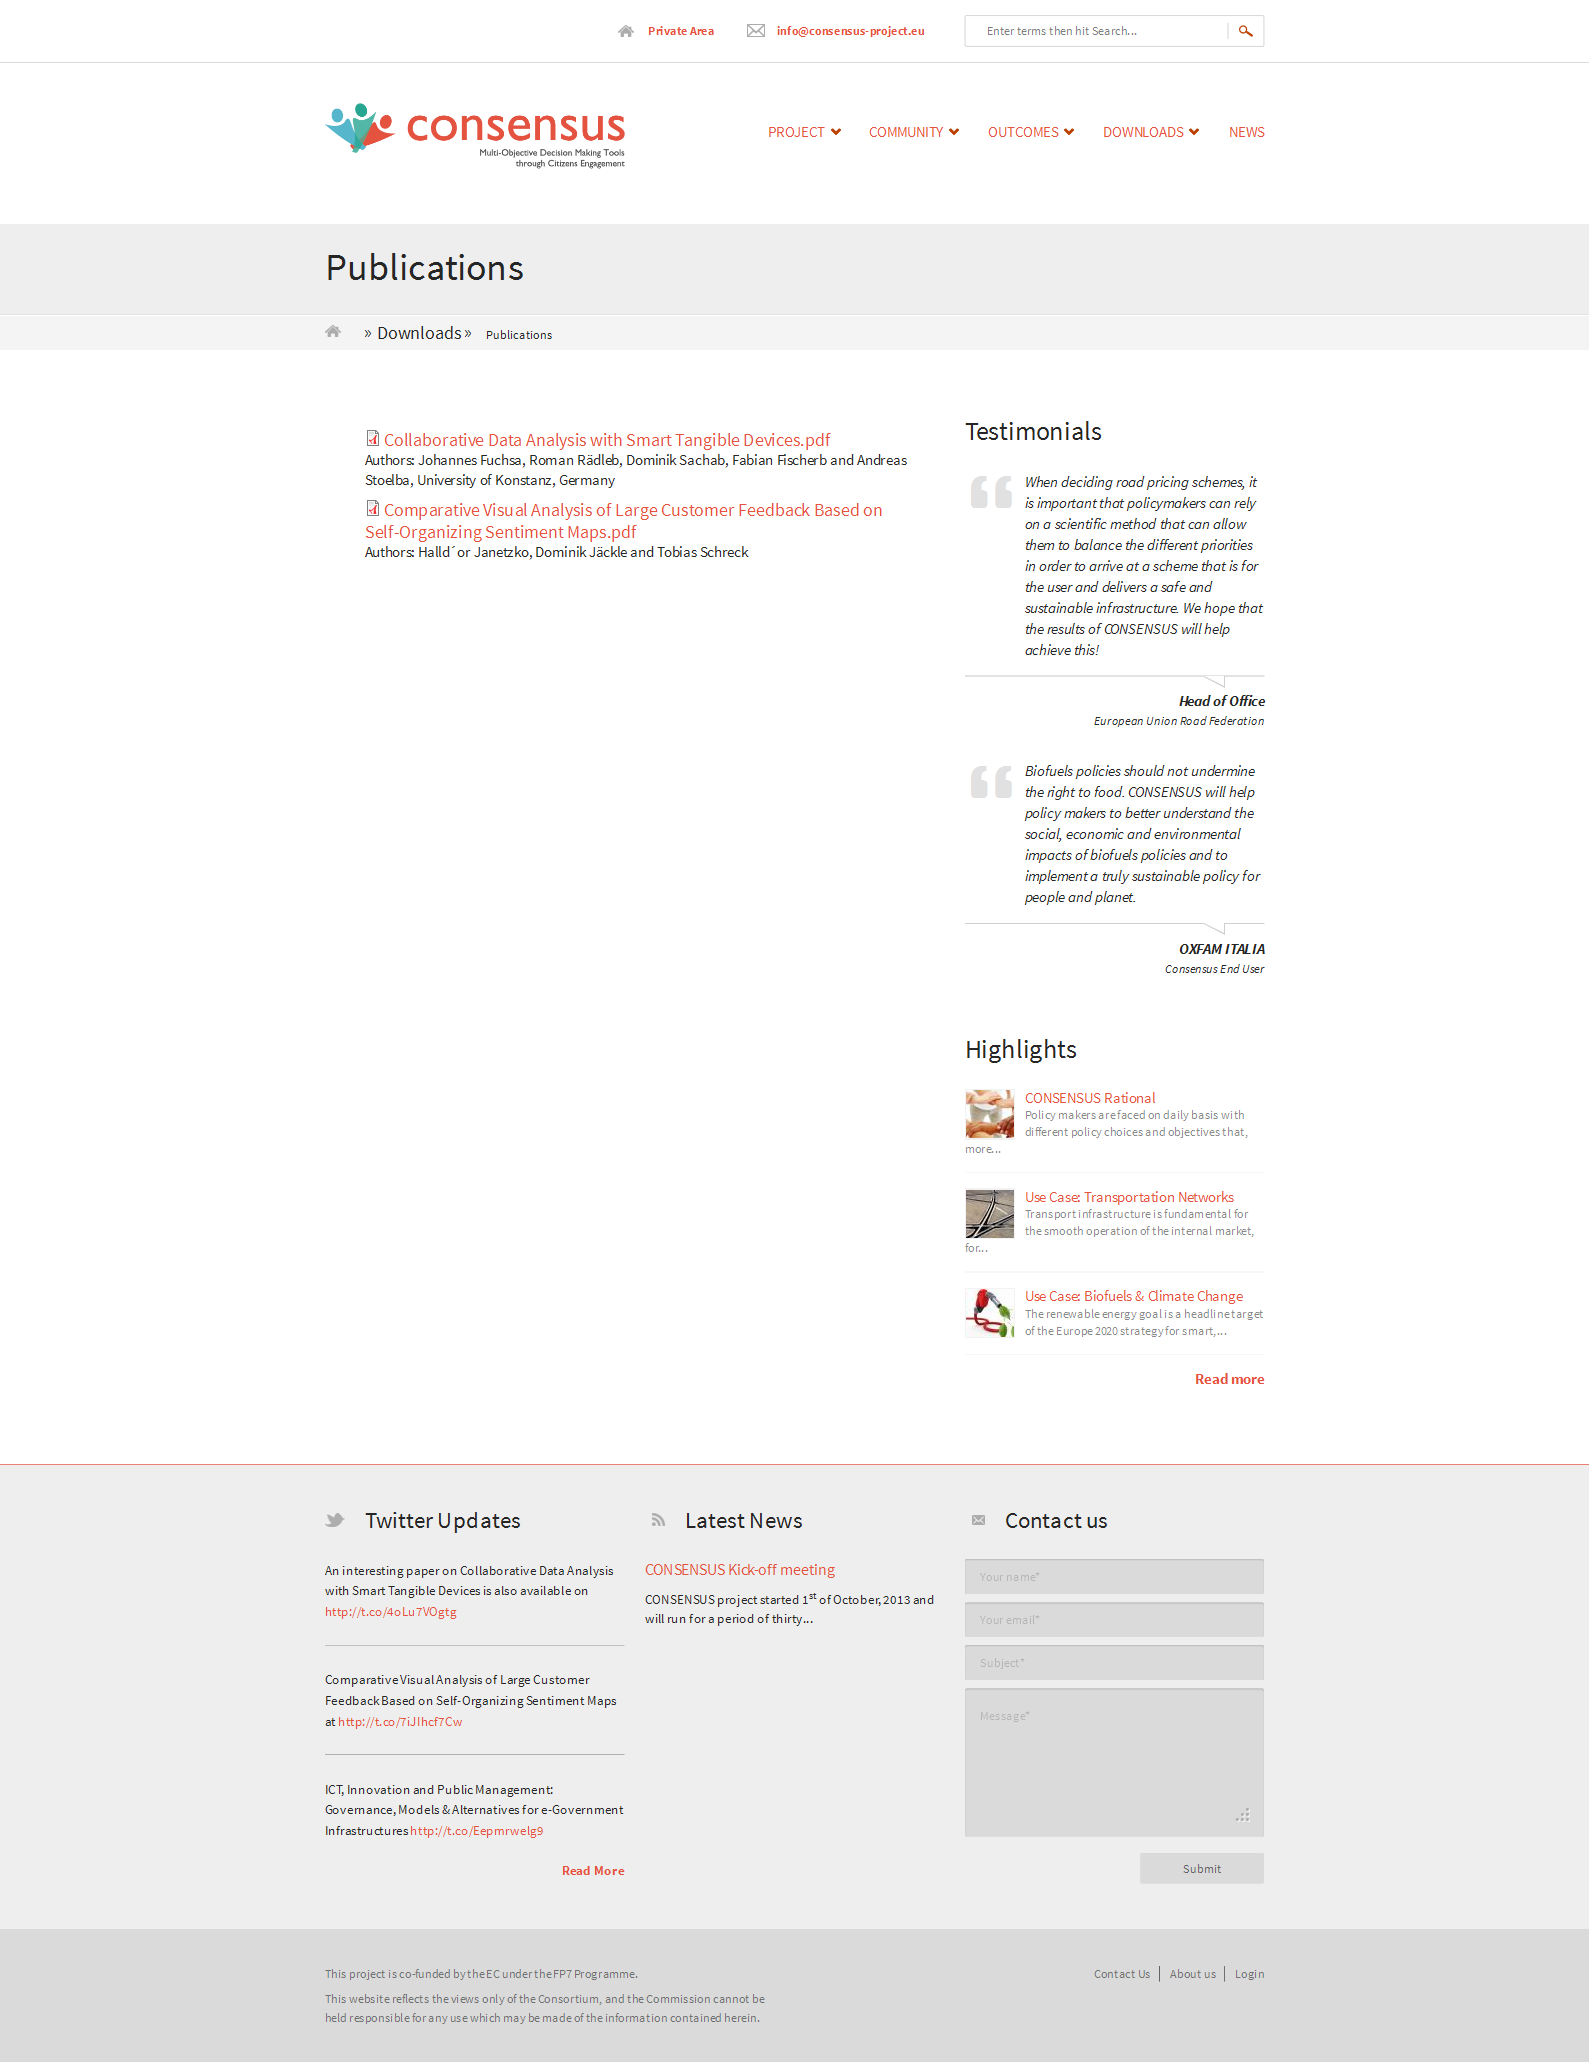 Publications webpage, as presented in the Figure 11 (Snapshot of the Publications page), provides access to the project publications that will be uploaded throughout the project period.